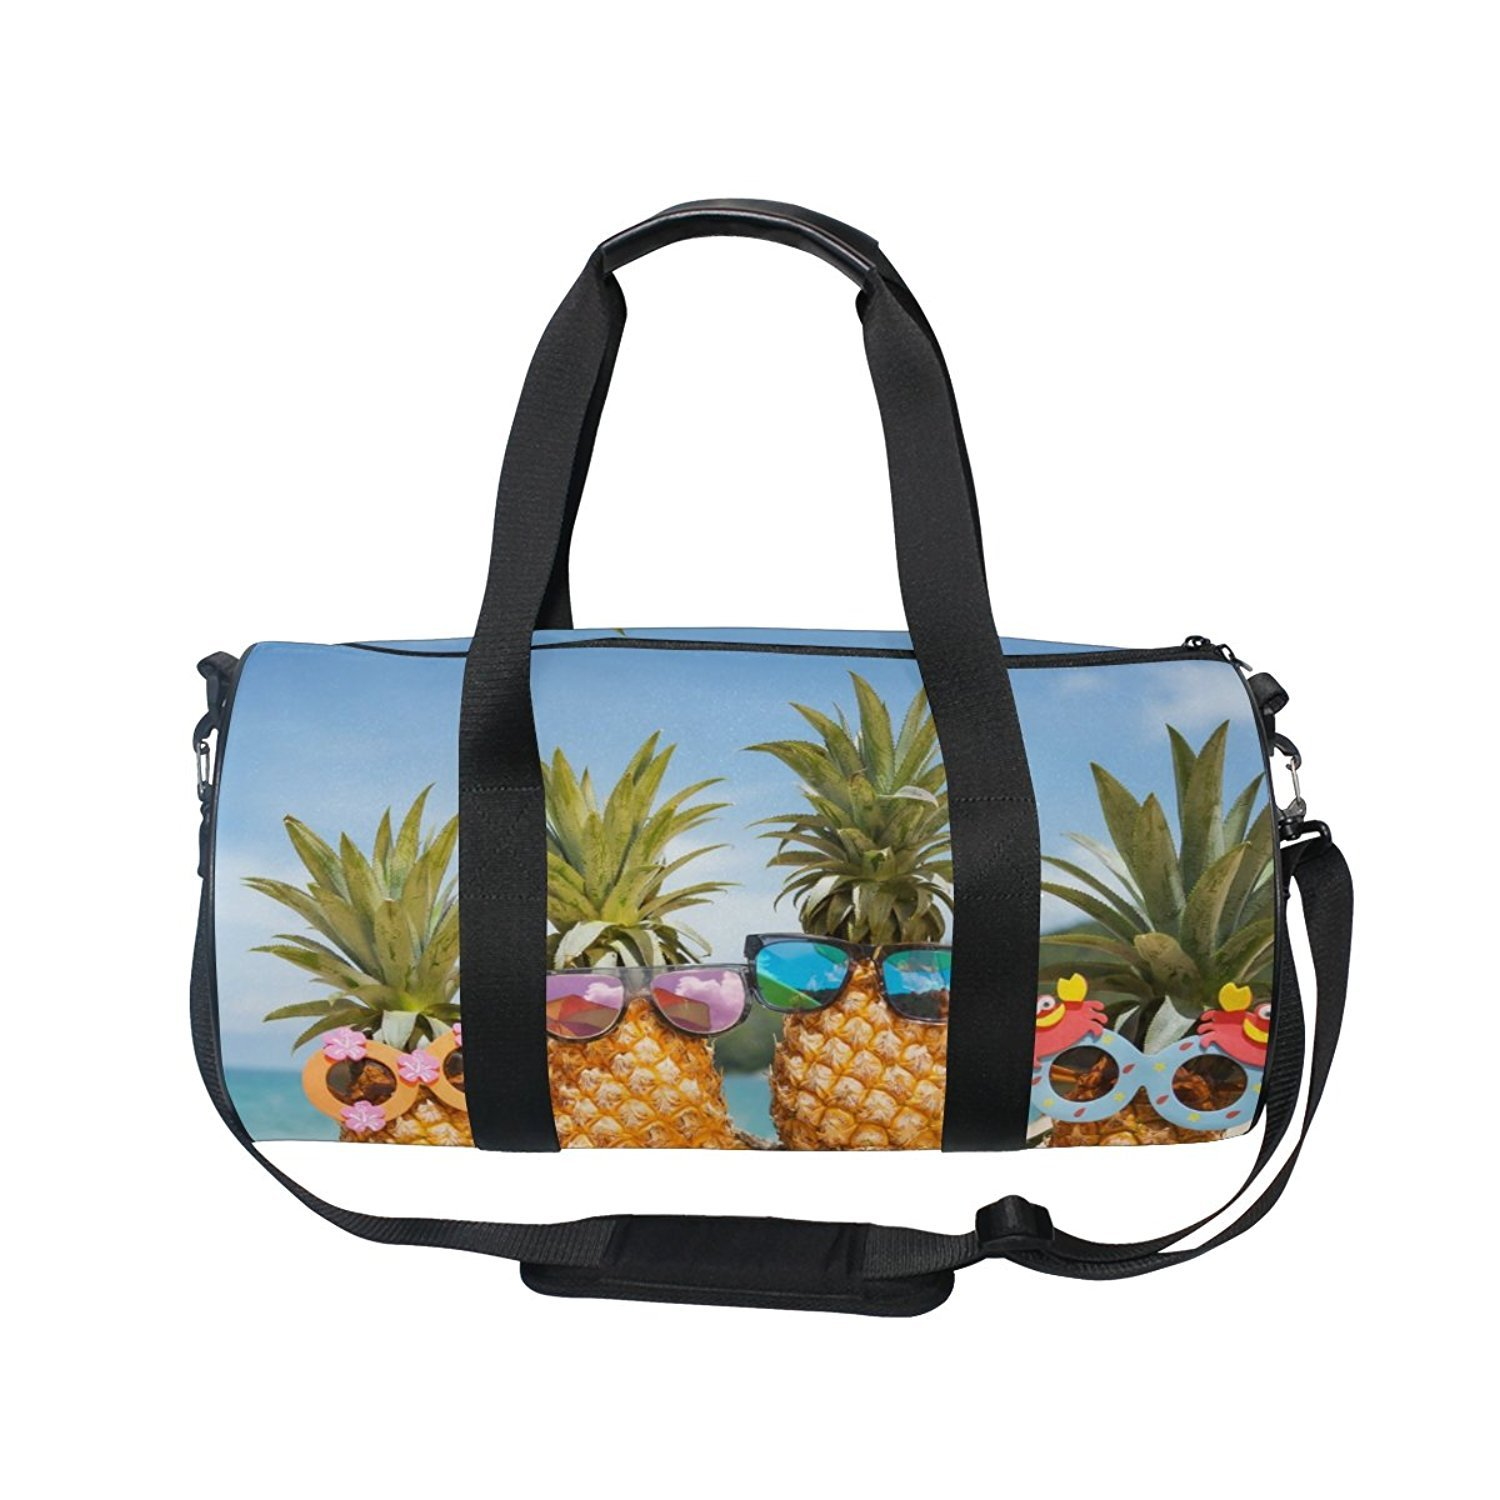 3ba4d86754 OuLian Duffel Bag Vintage Sunflowers Women Garment Gym Tote Bag Best Sports  Bag for Boys  Amazon.ca  Sports   Outdoors